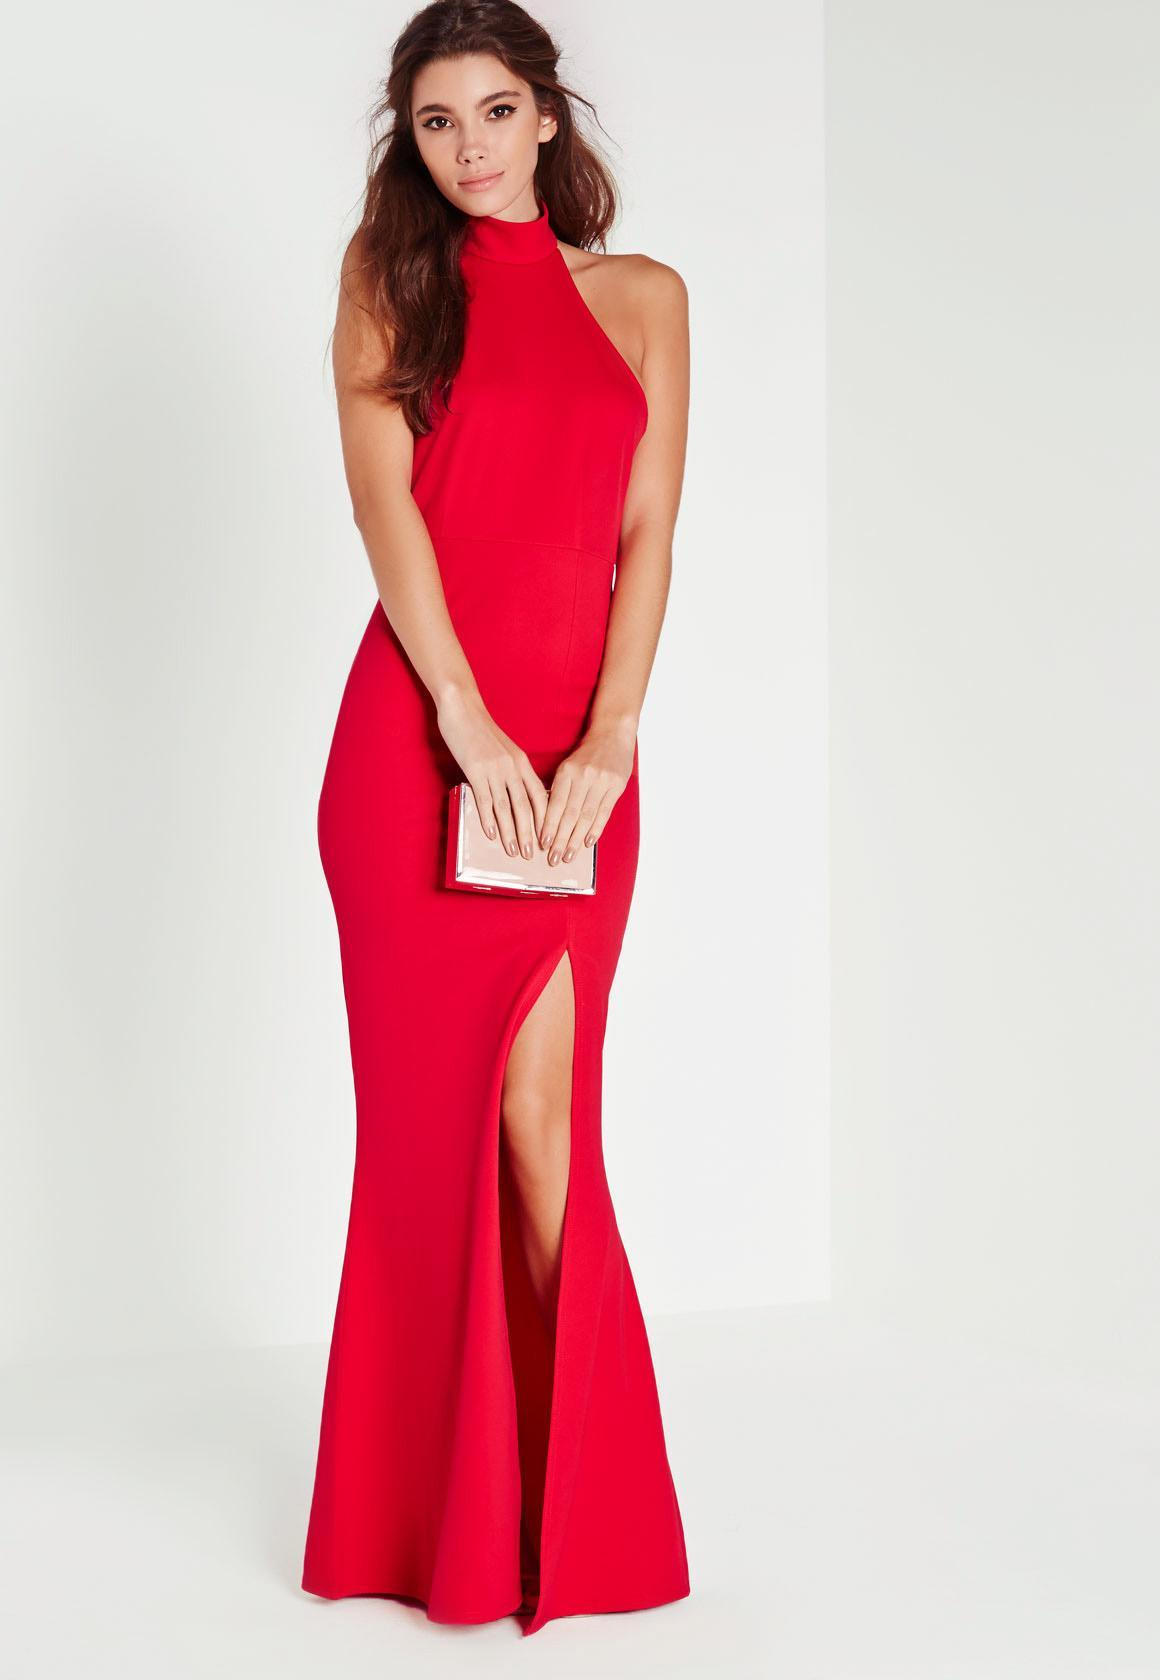 Robe rouge longue dos nu